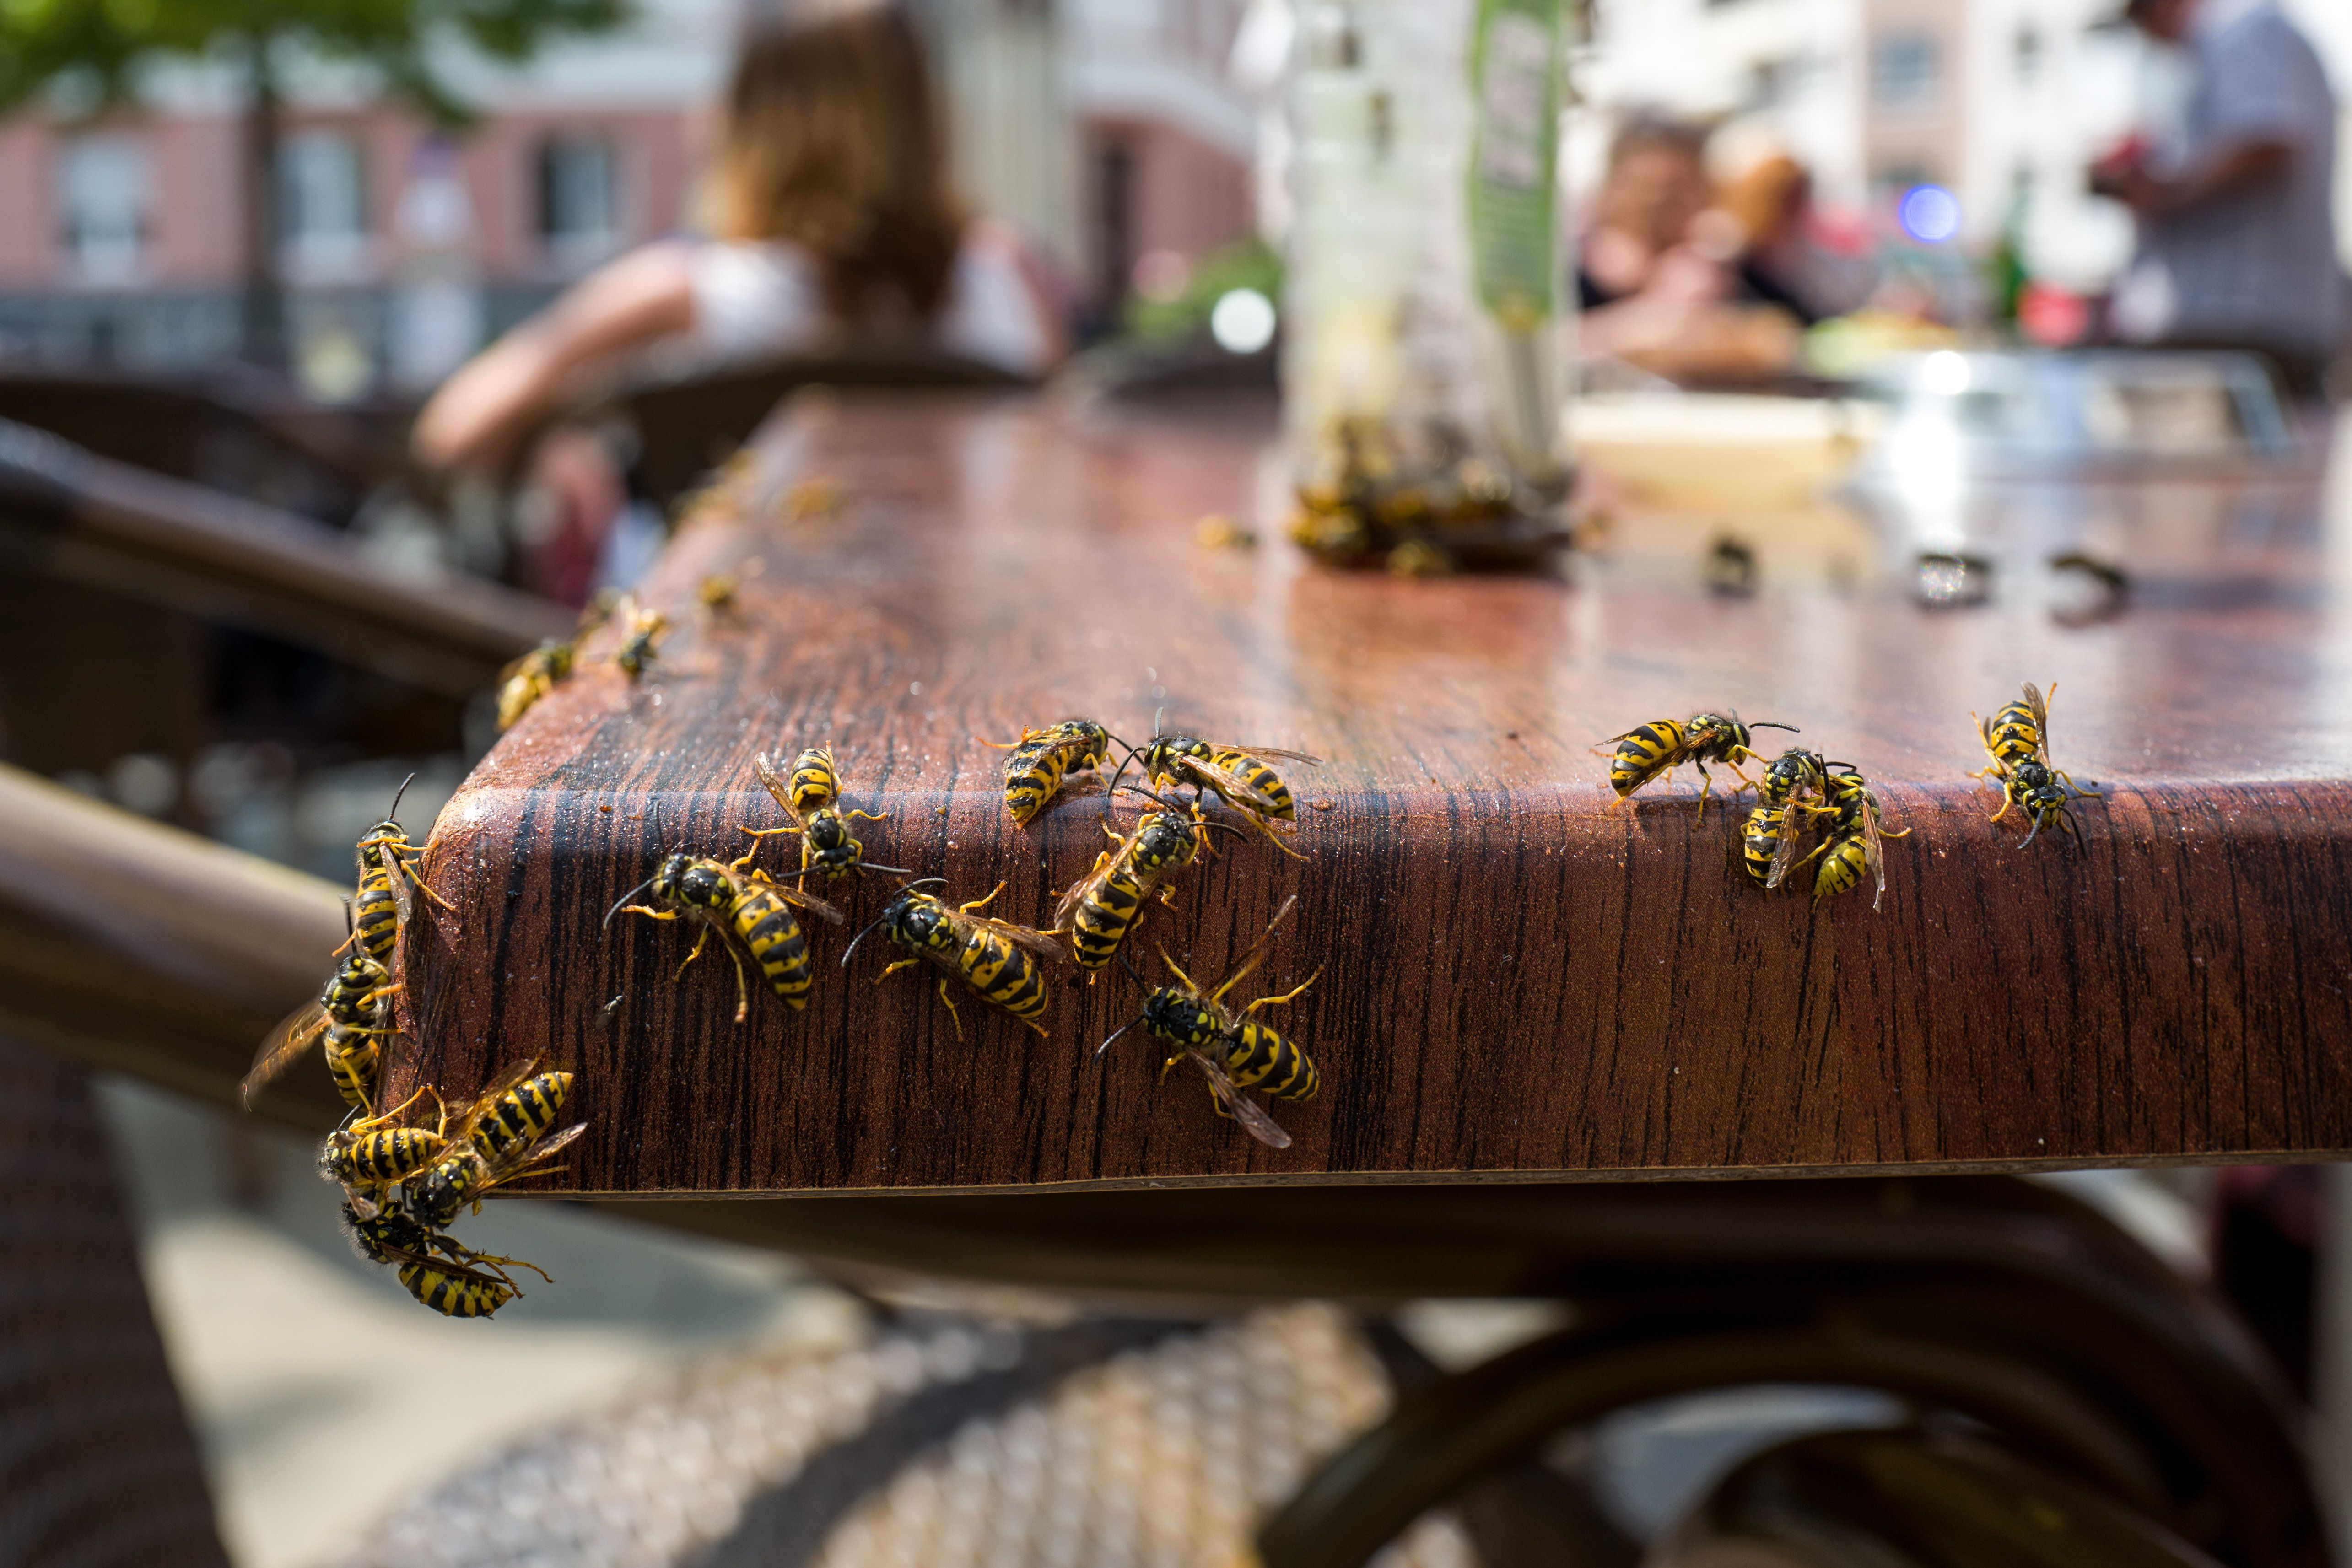 Don't Panic, But The Heatwave Is Making Wasps Live Longer (And Their Queens Are Thriving)